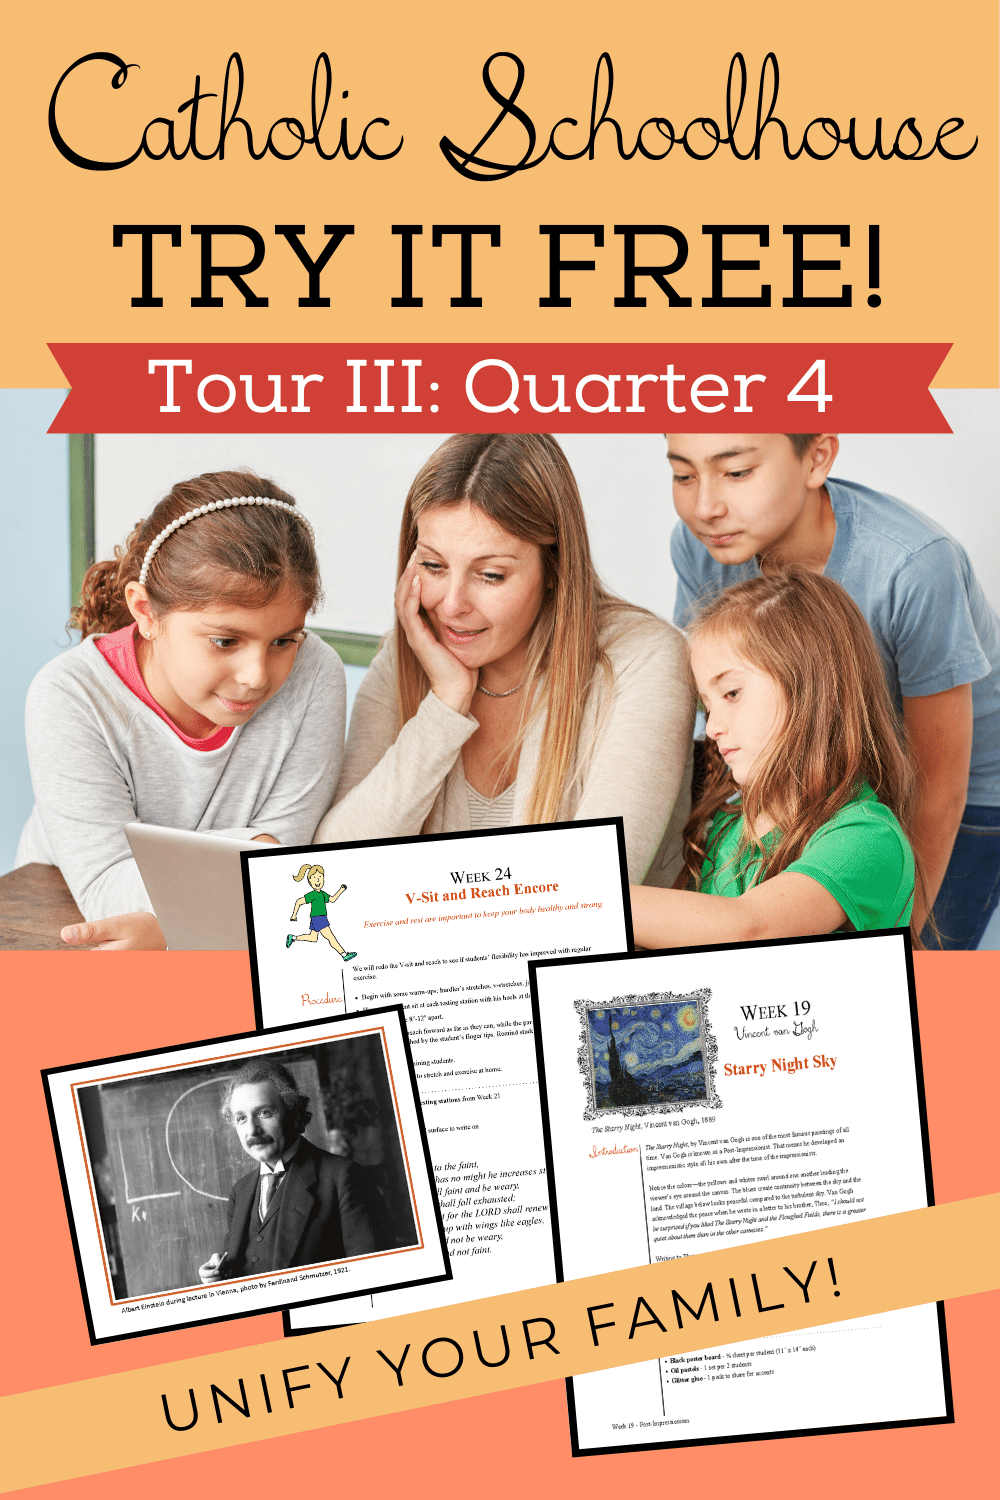 FREE! Try Catholic Homeschool for your Family